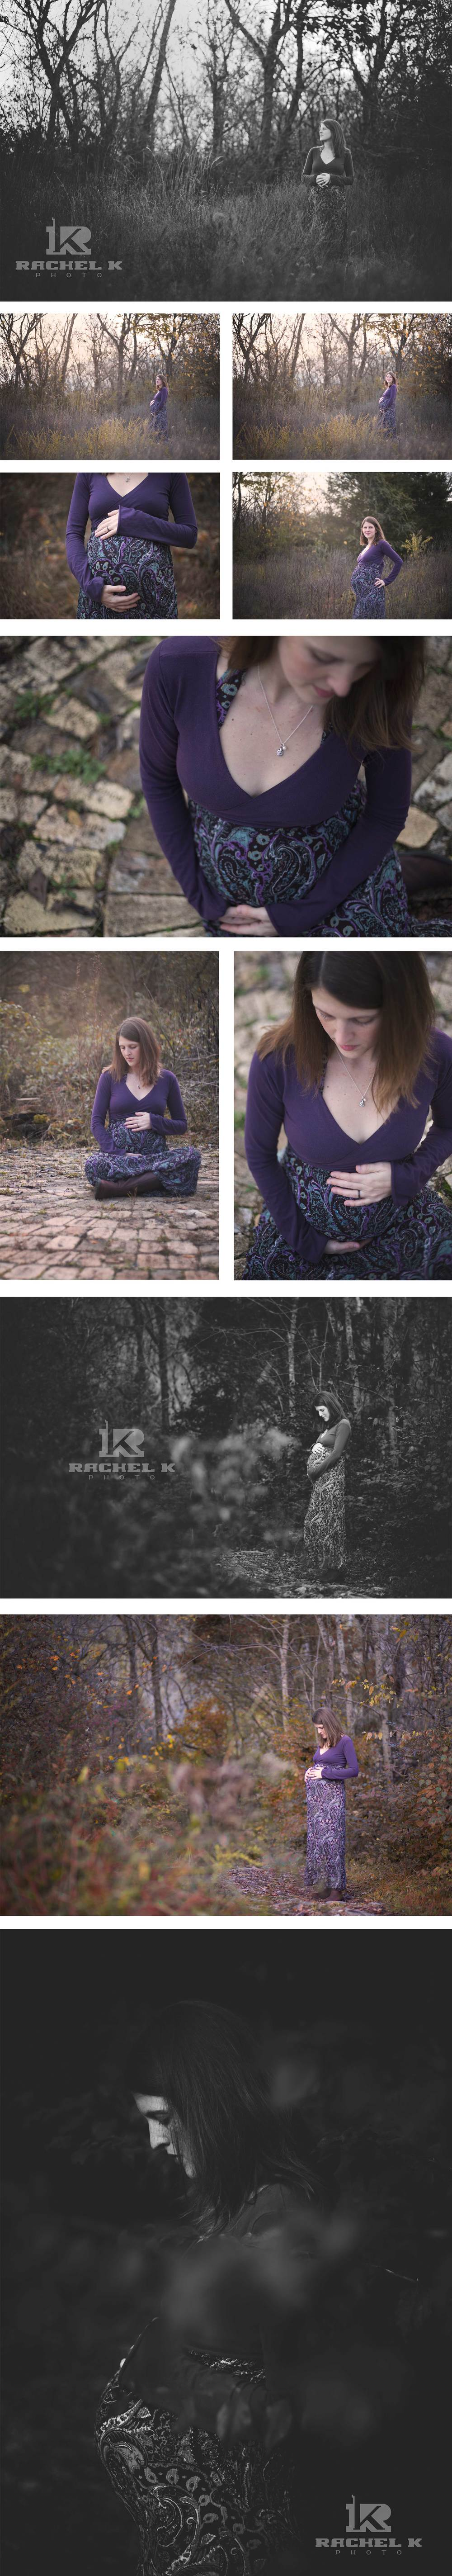 Knoxville maternity session